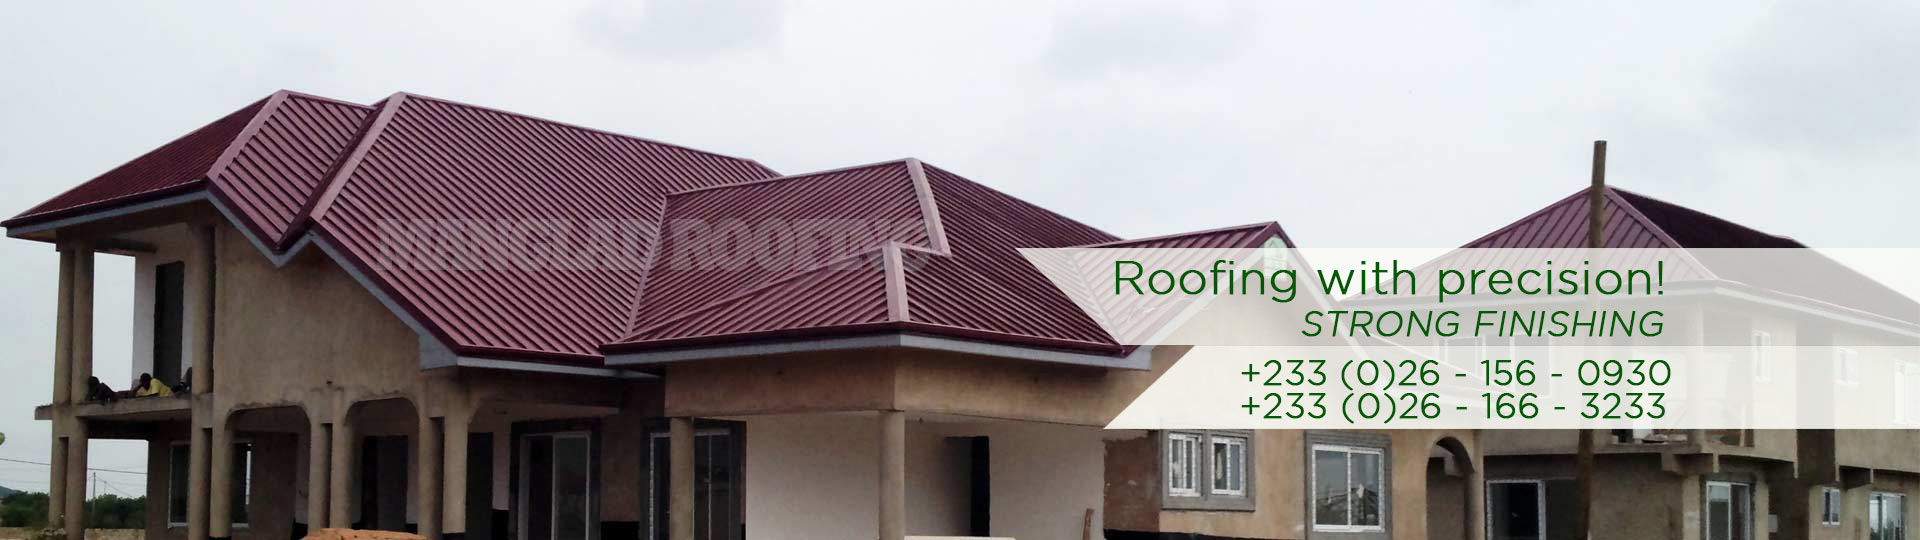 manglad_roofing_systems_ghana1